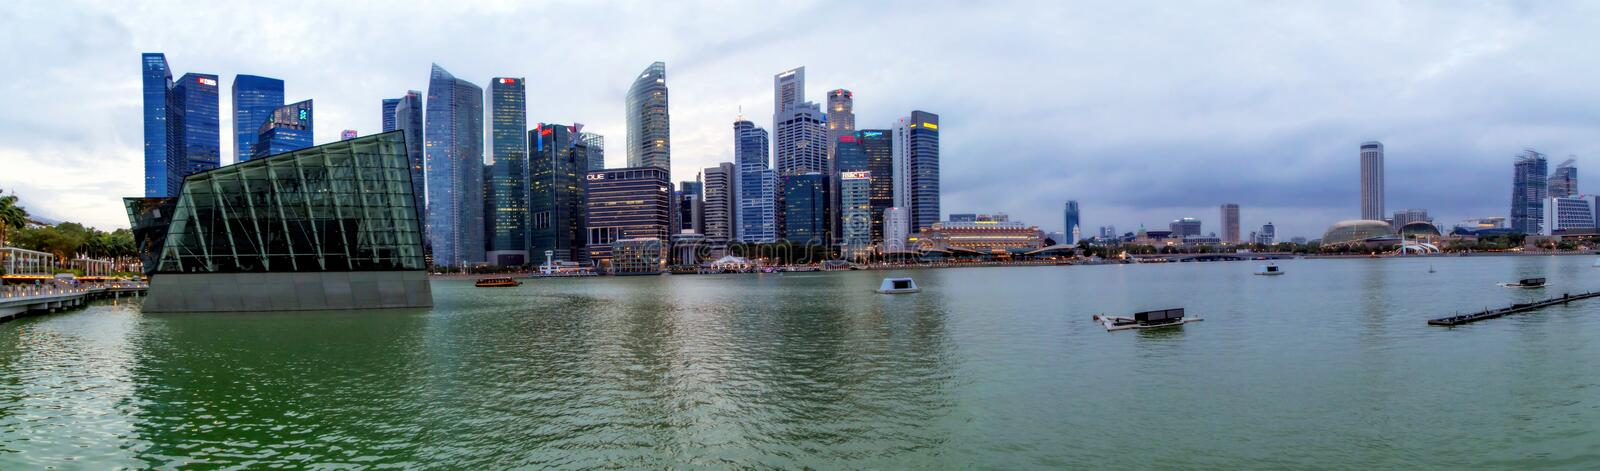 Singapore River royalty free stock photography